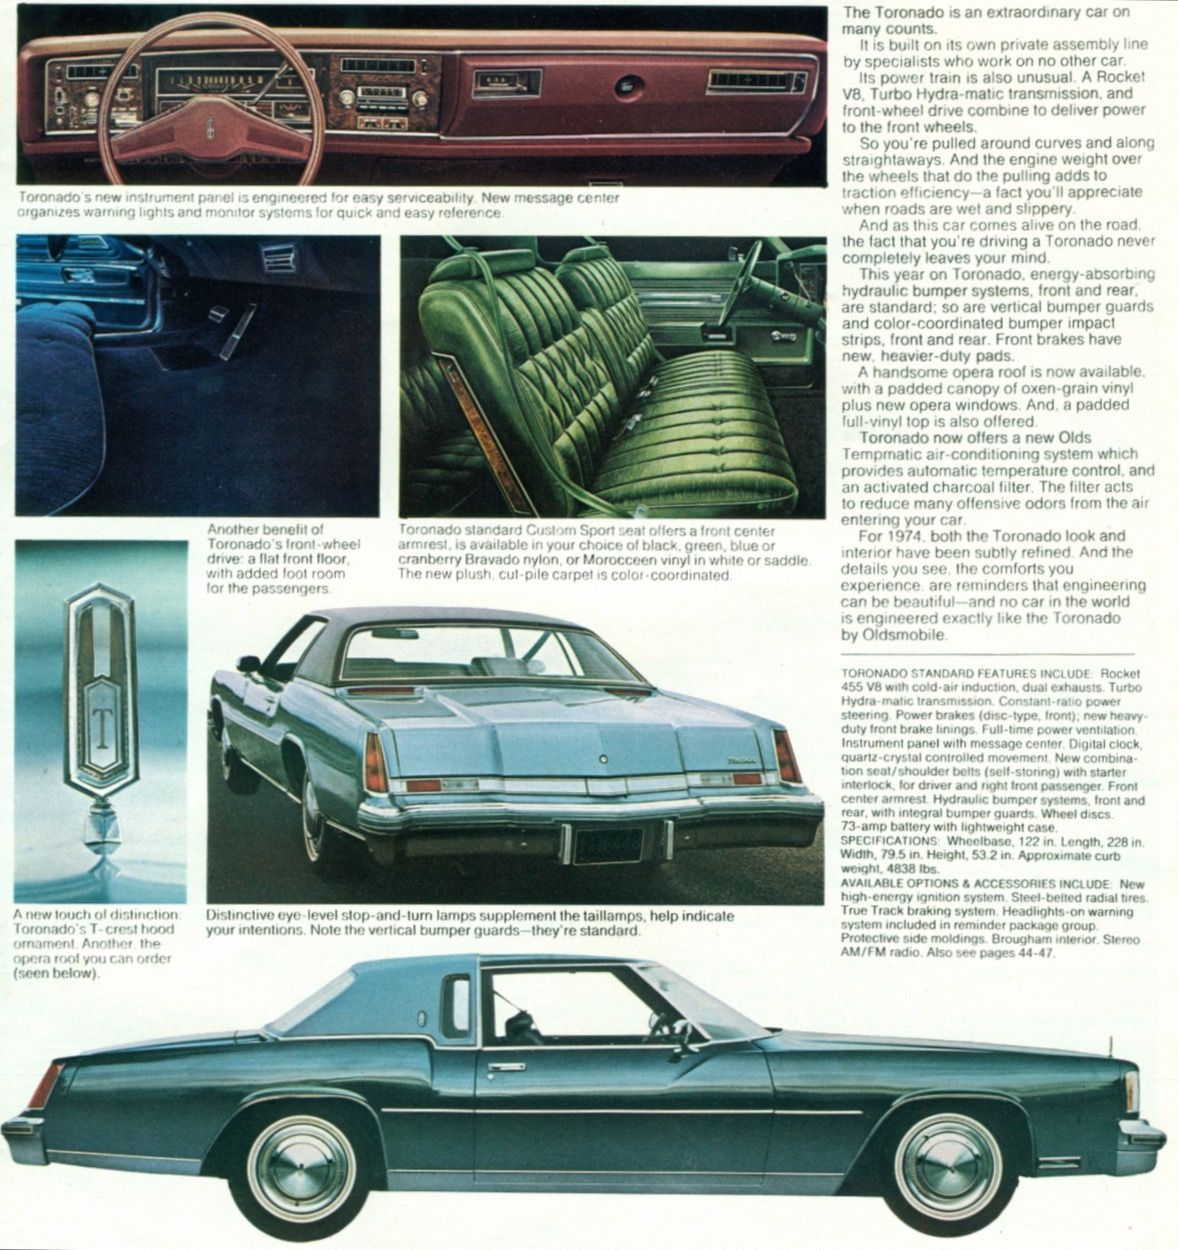 Pin By Michael Clark On Carros Oldsmobile Toronado Oldsmobile Automobile Advertising